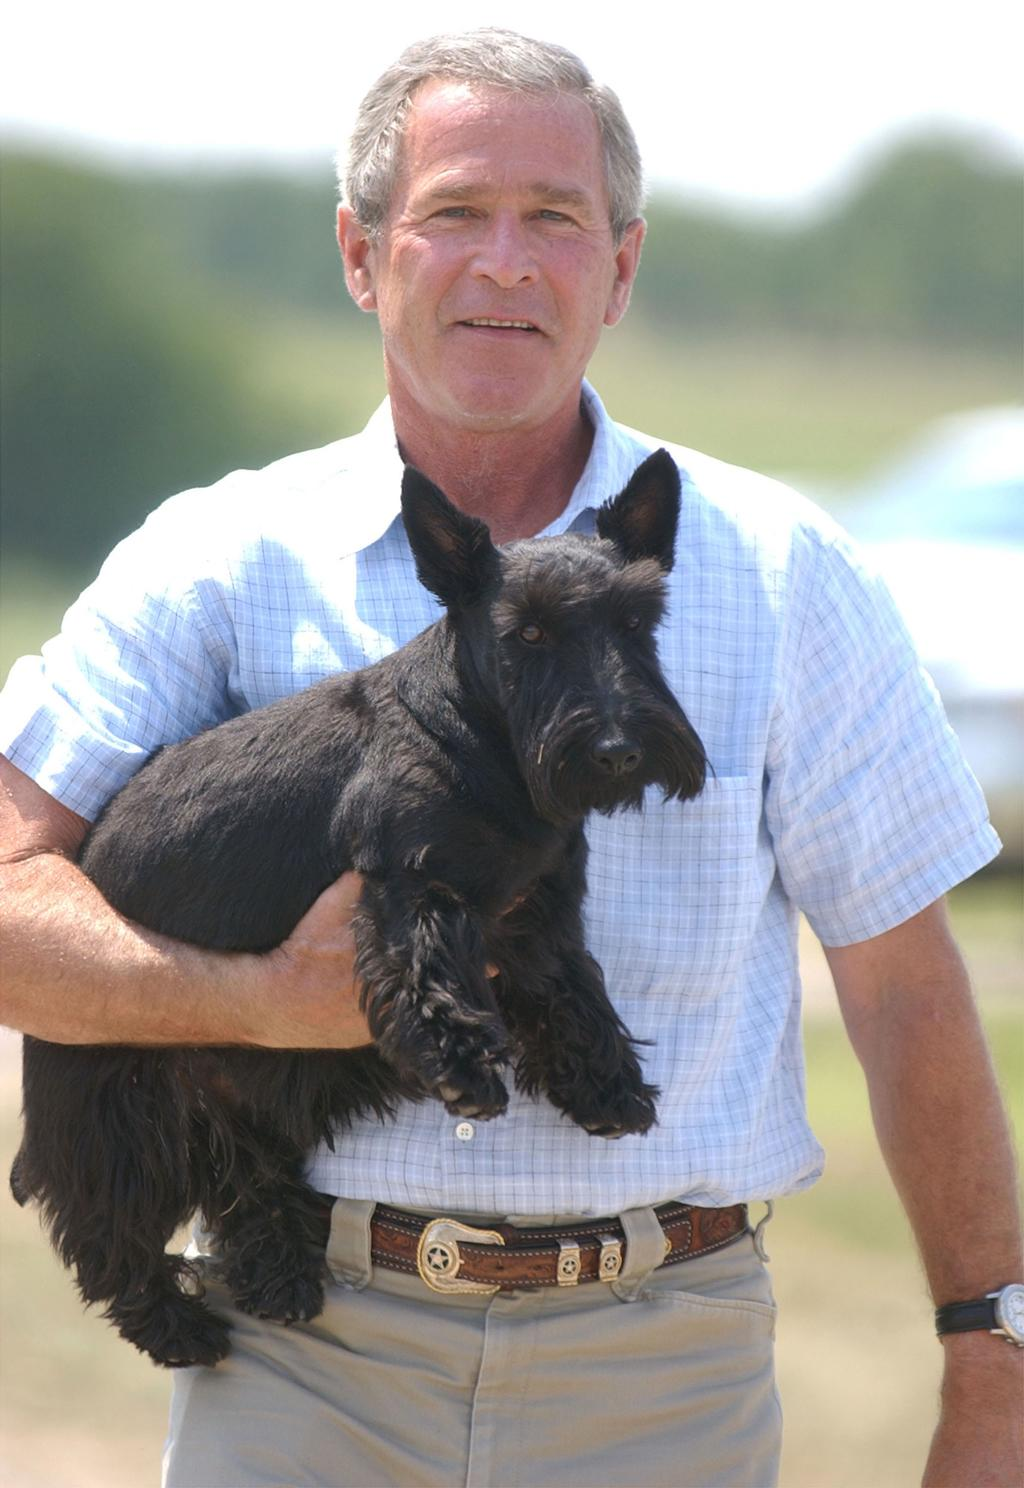 U.S. President George W. Bush carries his dog, Barney, after meeting with the media near his ranch August 13, 2003 in Crawford, Texas. President Bush met with his economic team at his Texas ranch. (Photo by Duane A. Laverty-Pool/Getty Images)